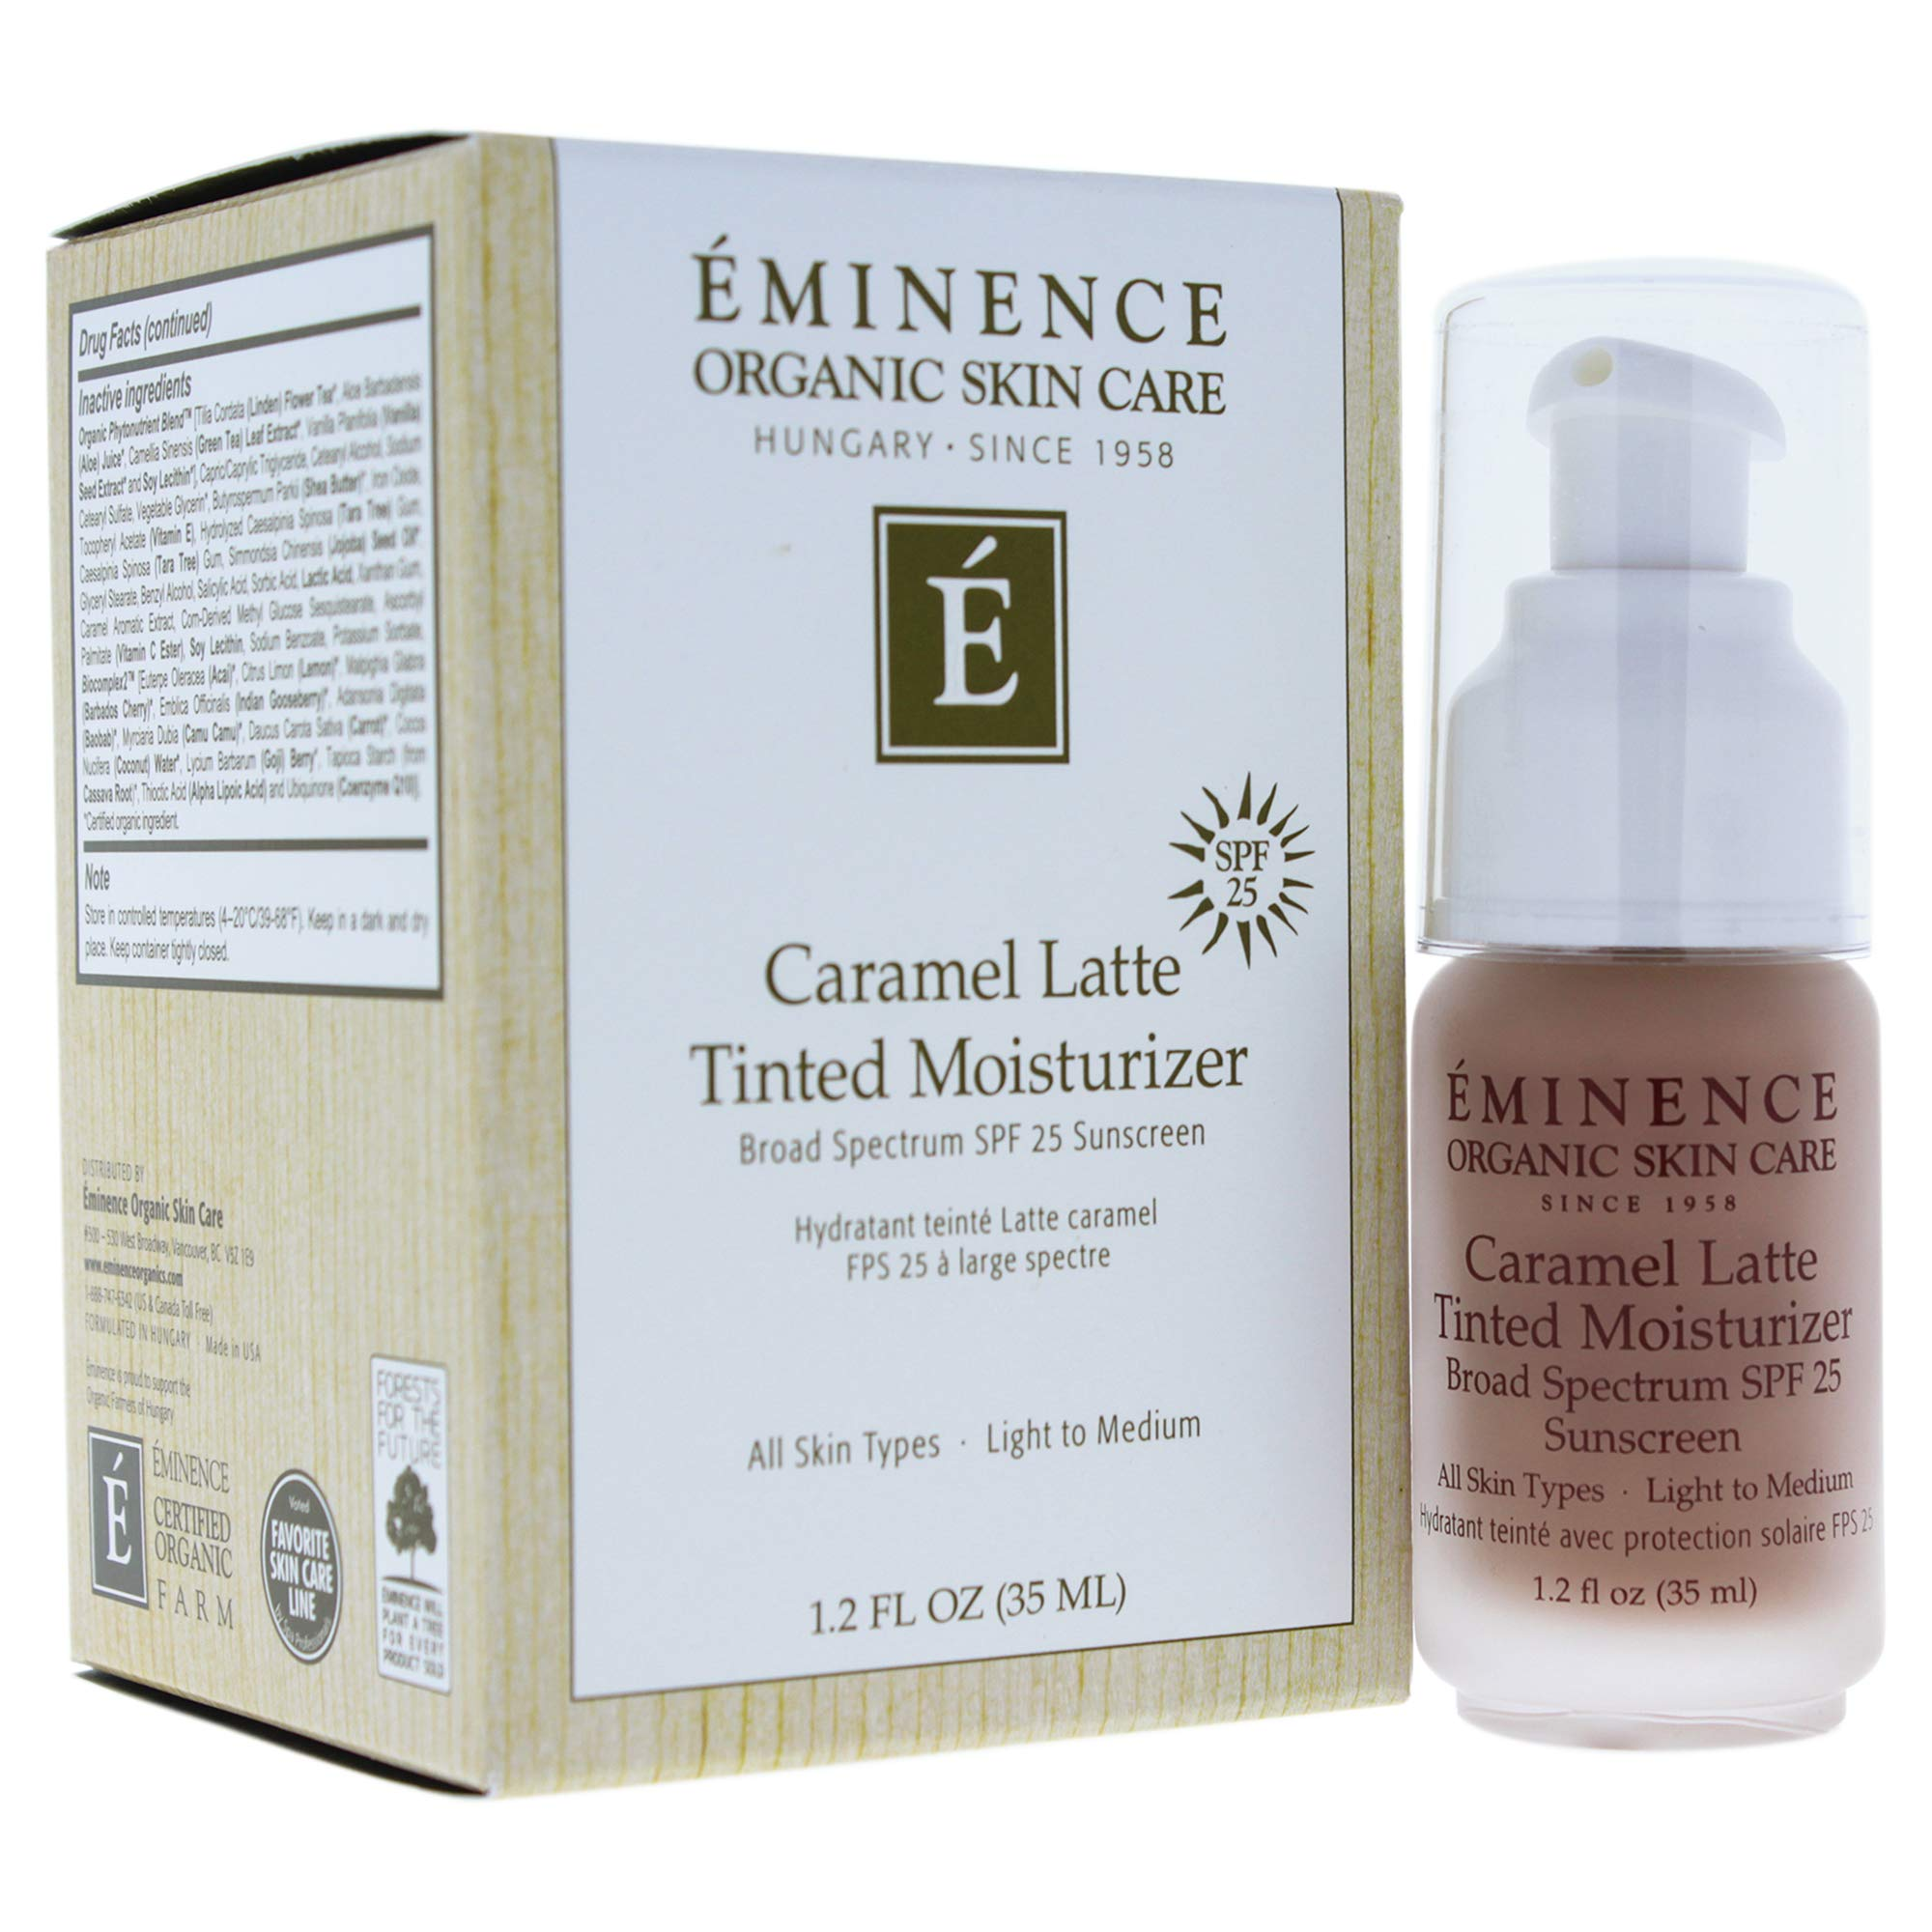 Eminence Caramel Latte Tinted Moisturizer Spf 25 (Light To Medium), 1.2 Ounce by Eminence